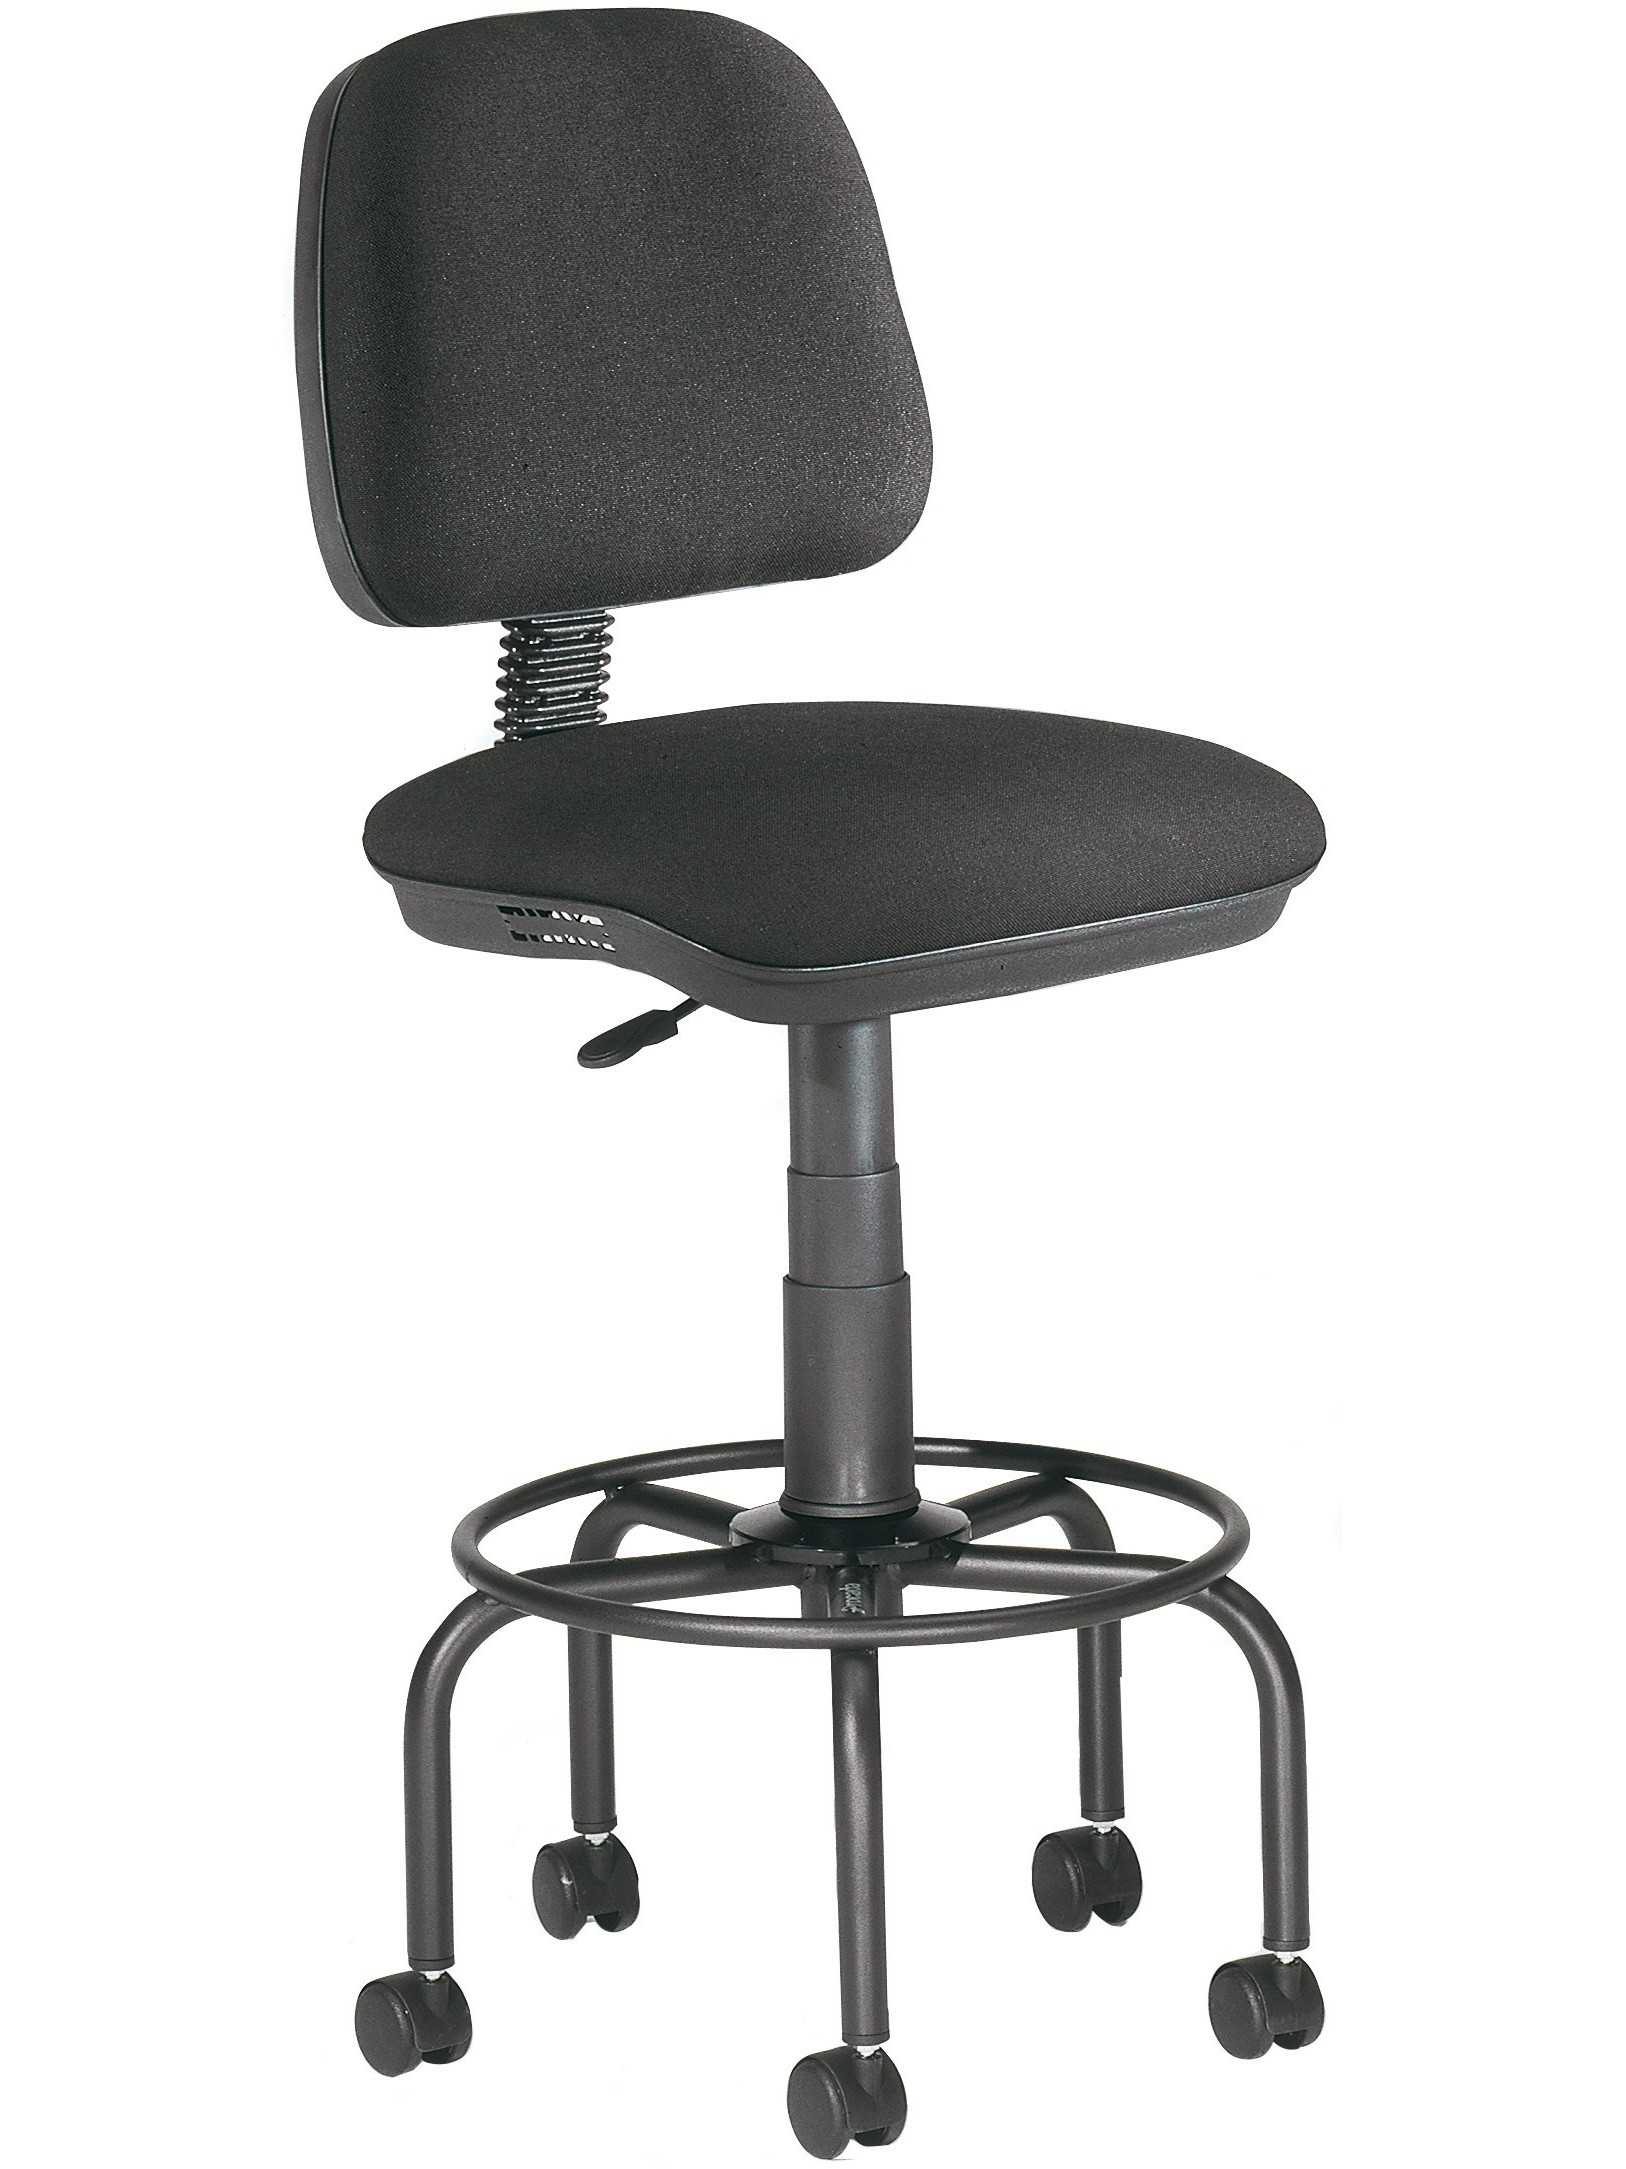 STOOL RD-980 WITH GAS AND WHEELS